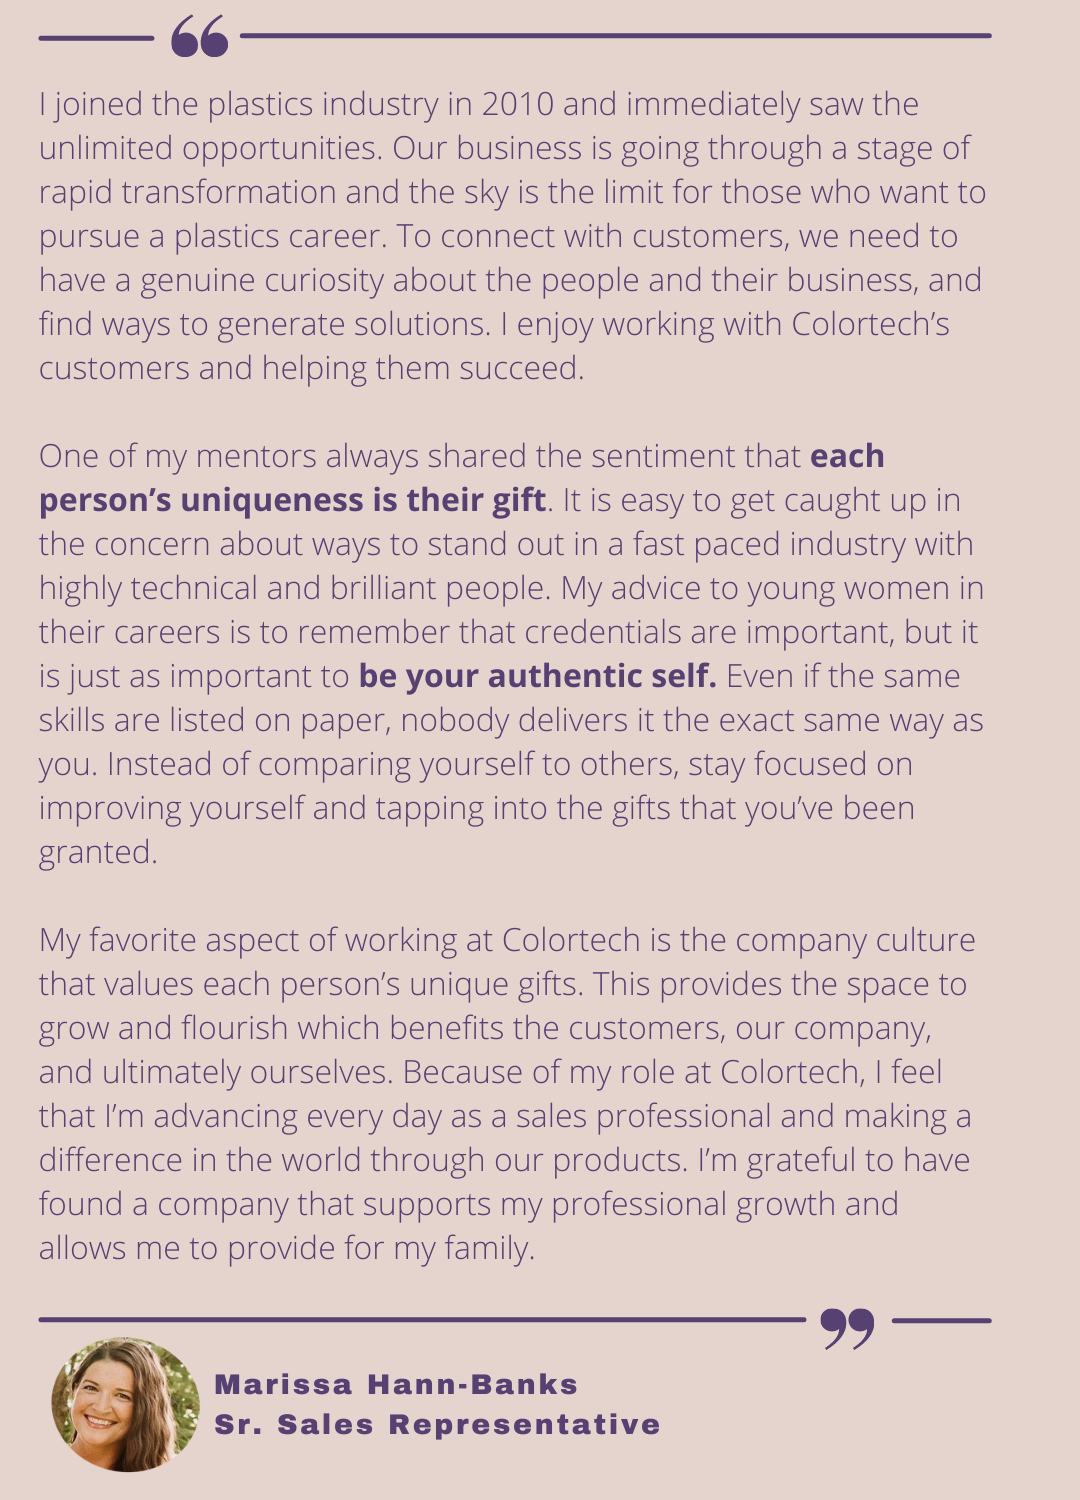 Marissa Hann-Banks, Senior Sales Representative, describes how her past experience in the industry has taught her to be her authentic self. She also acknowledges Colortech's unique company culture and finding a company that supports her professional growth.